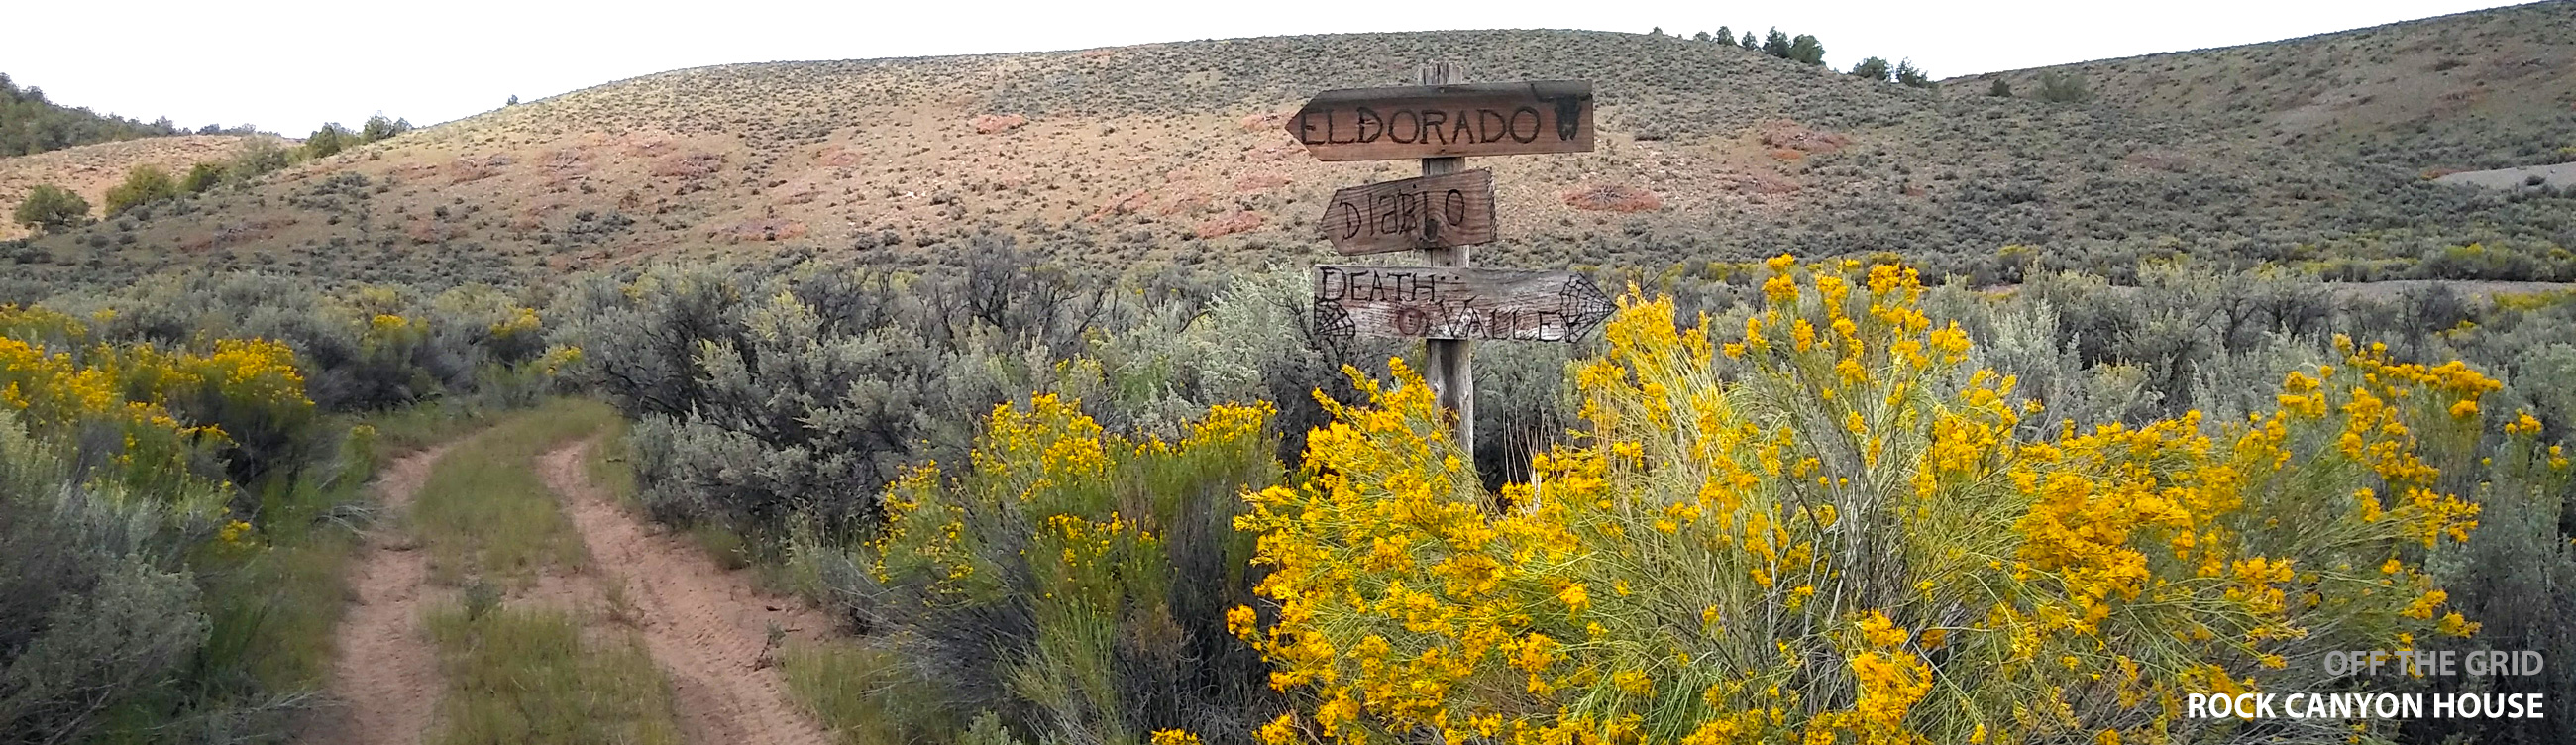 Diablo/El Dorado ATV Trail Sign